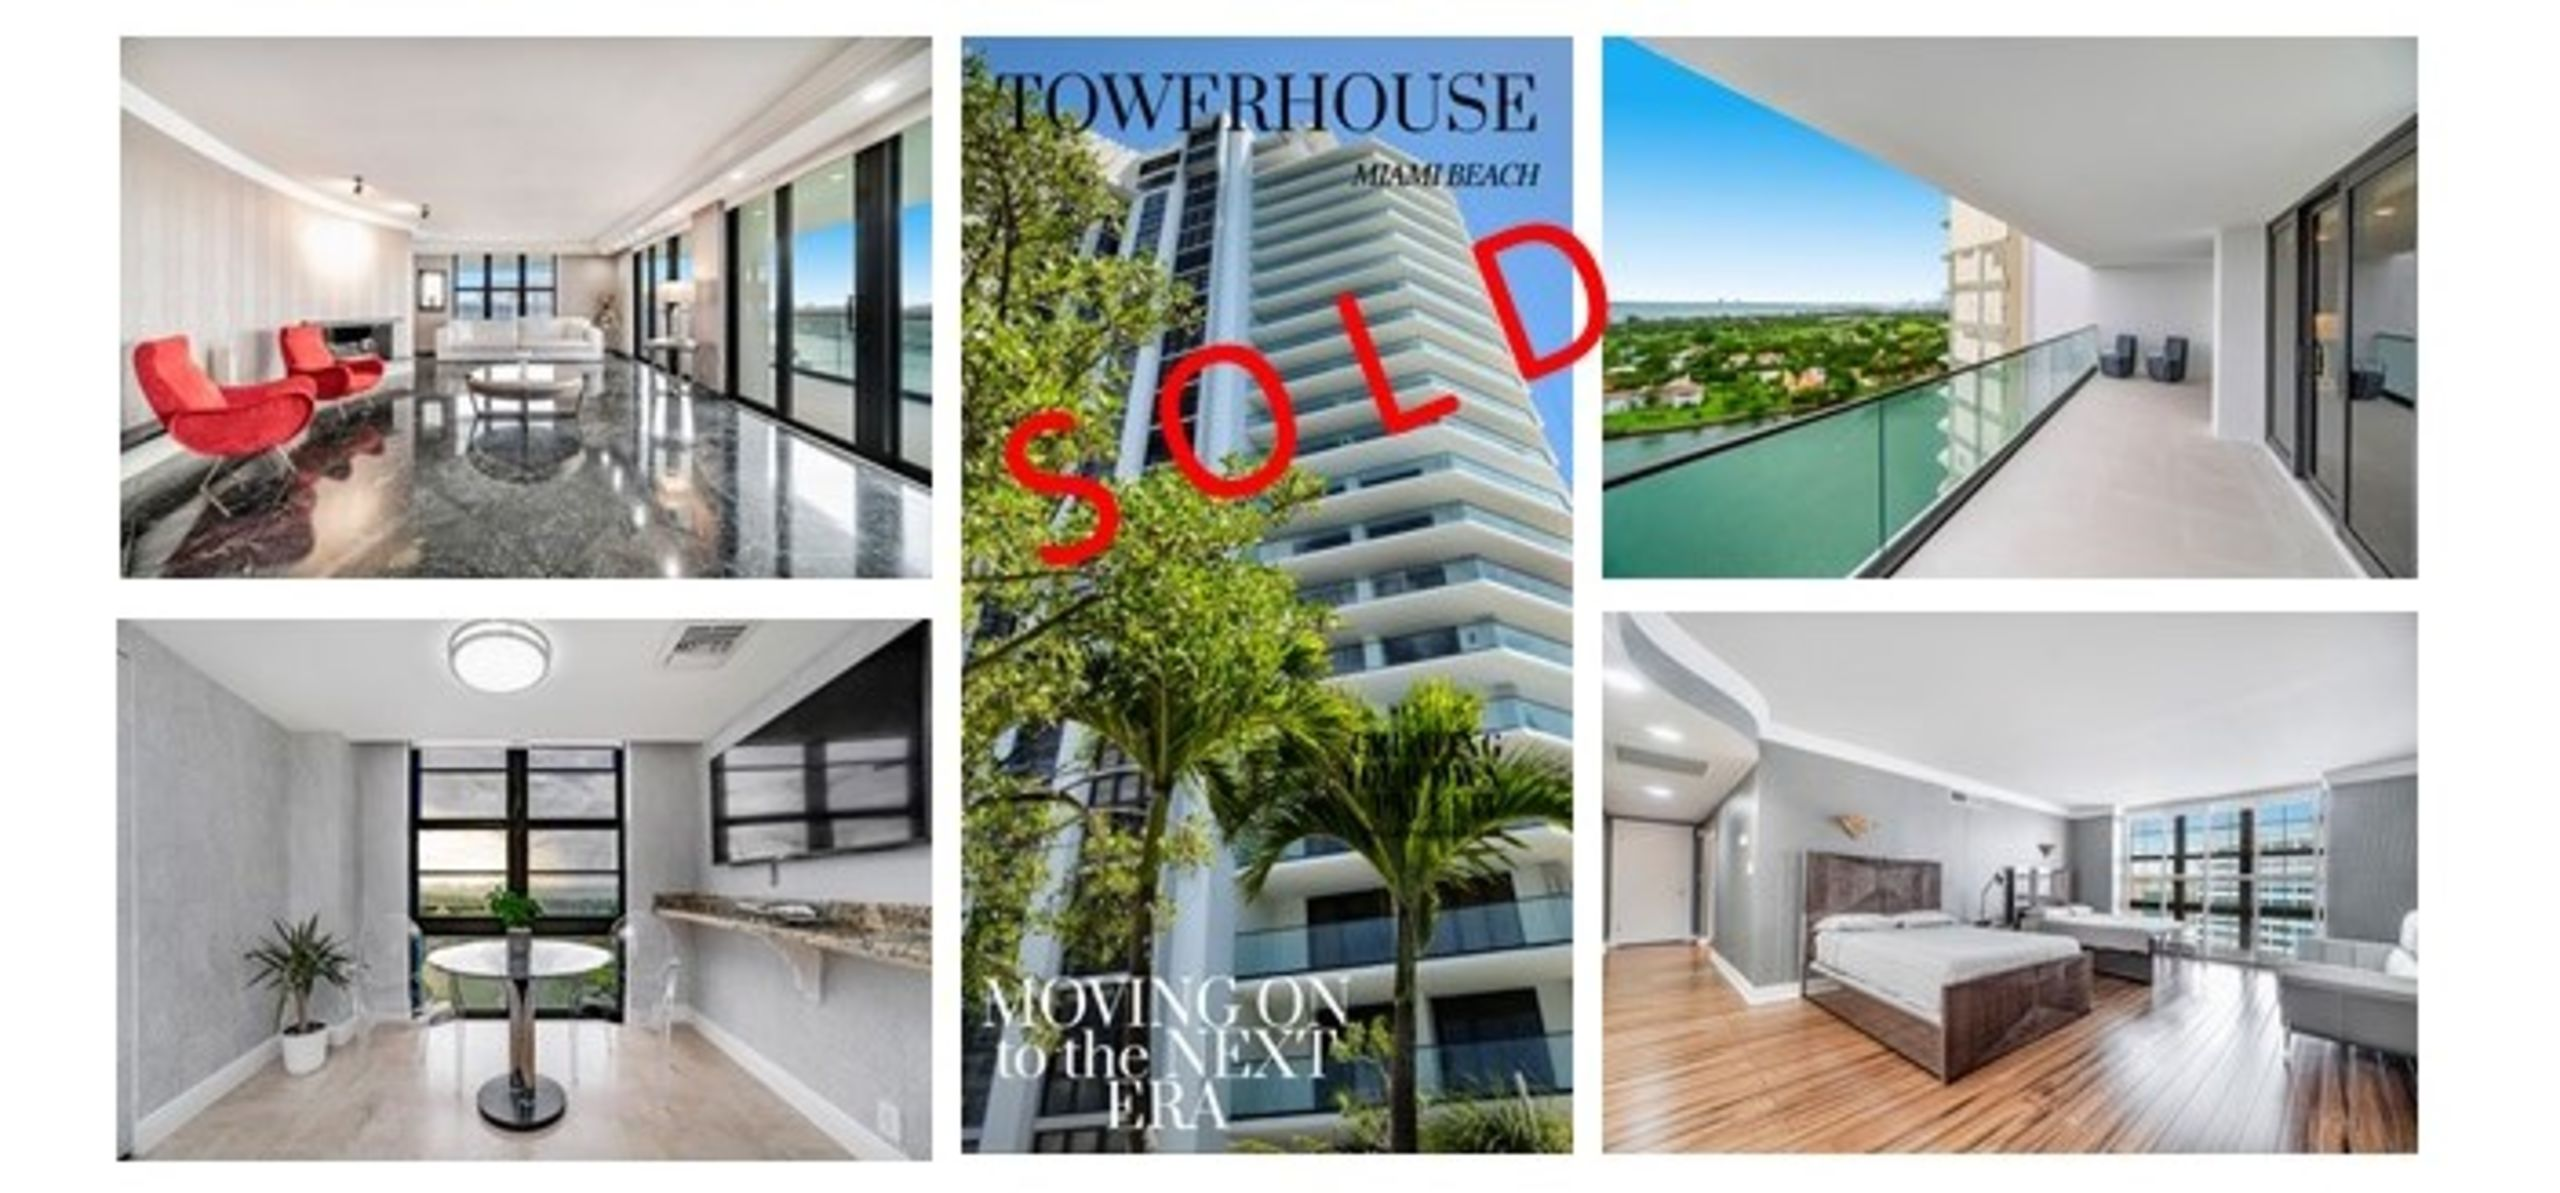 Towerhouse Condo, 5500 Collins Ave, Apt. 1804, Miami Beach, FL 33140 | $1,550,000